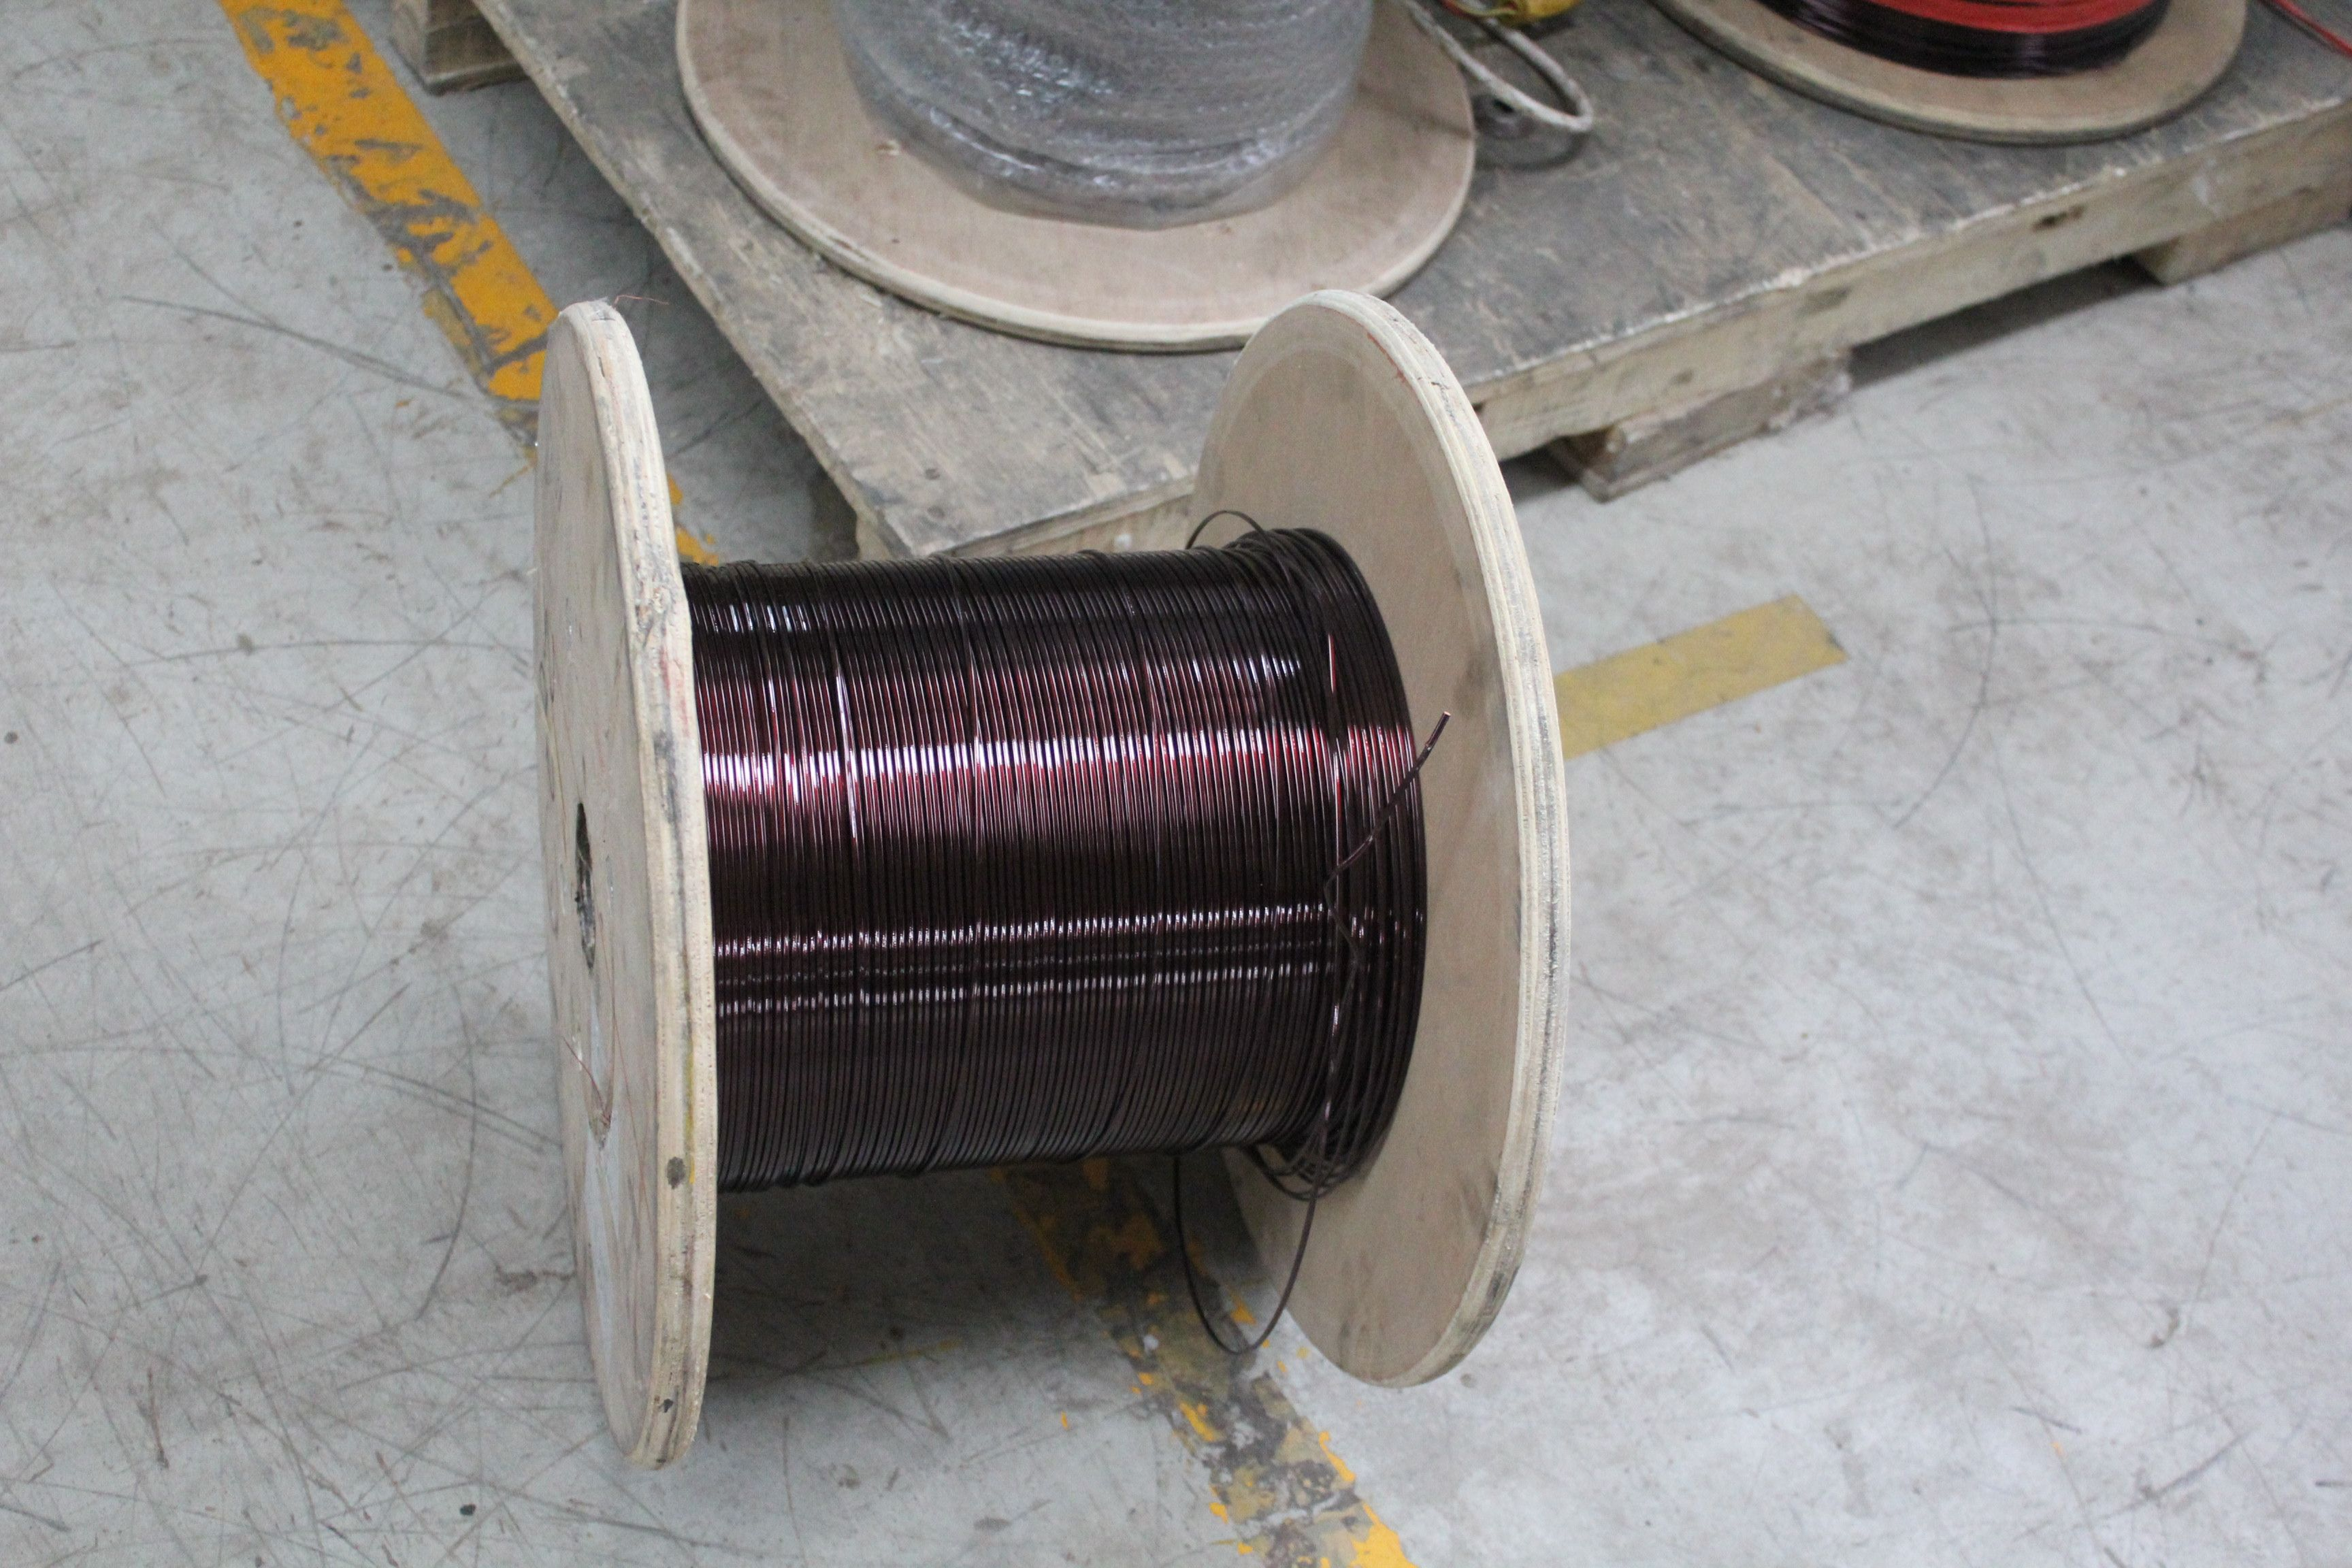 enameled aluminum wire s flame retardant level is b so it has good better shielding effectiveness and high mechanical property  [ 3456 x 2304 Pixel ]